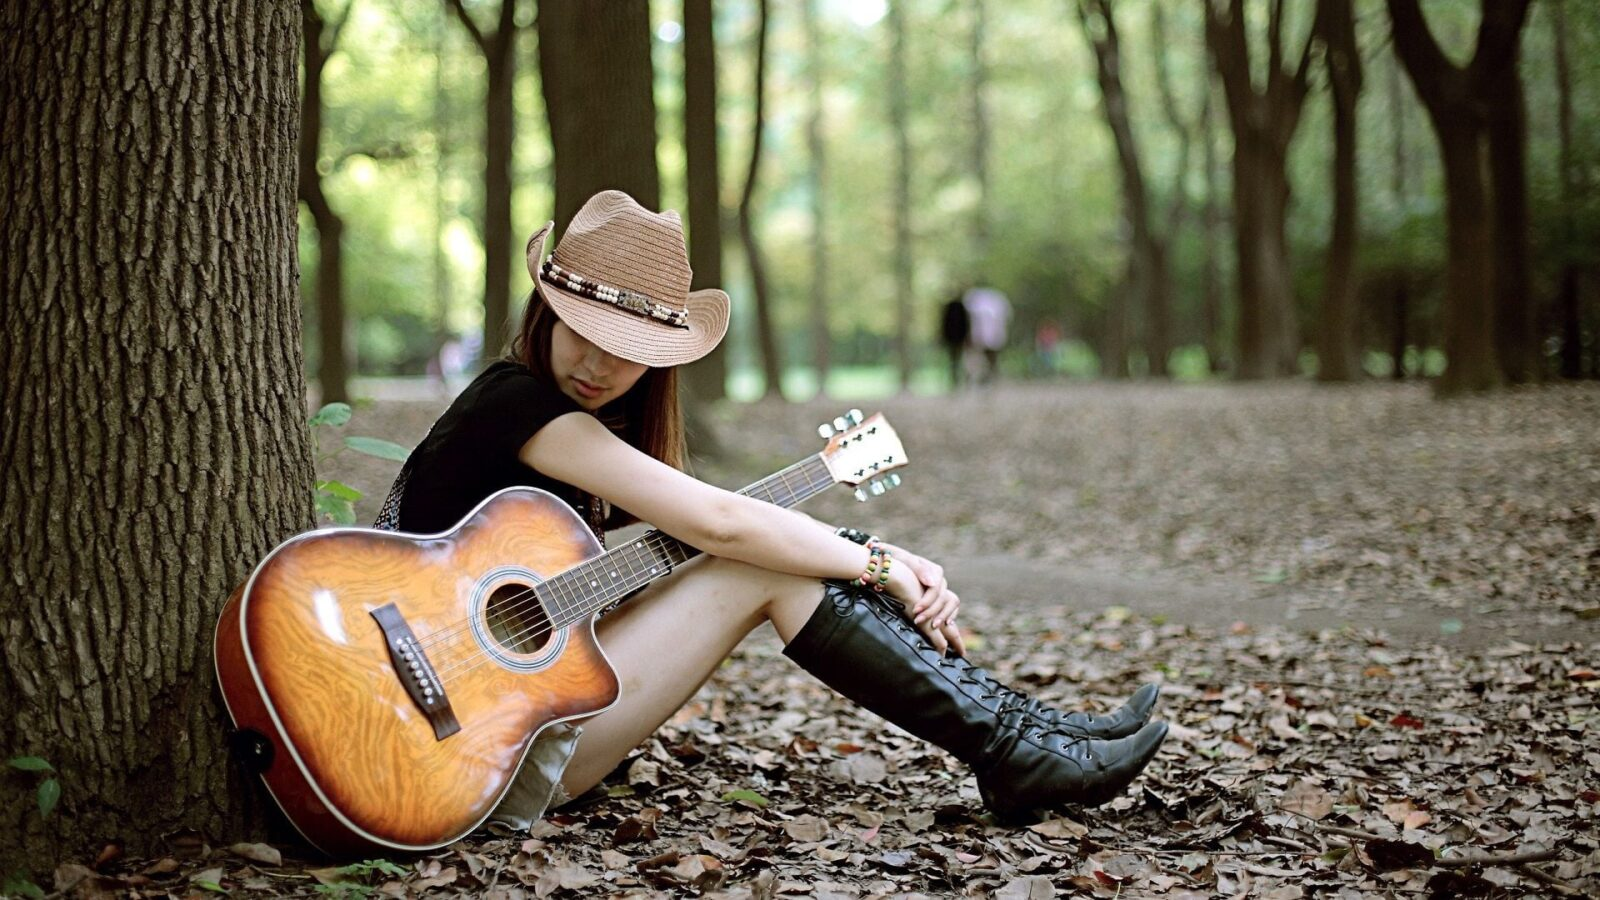 Love couple Guitar Wallpaper : Wallpapers Girl With Guitar HD Download